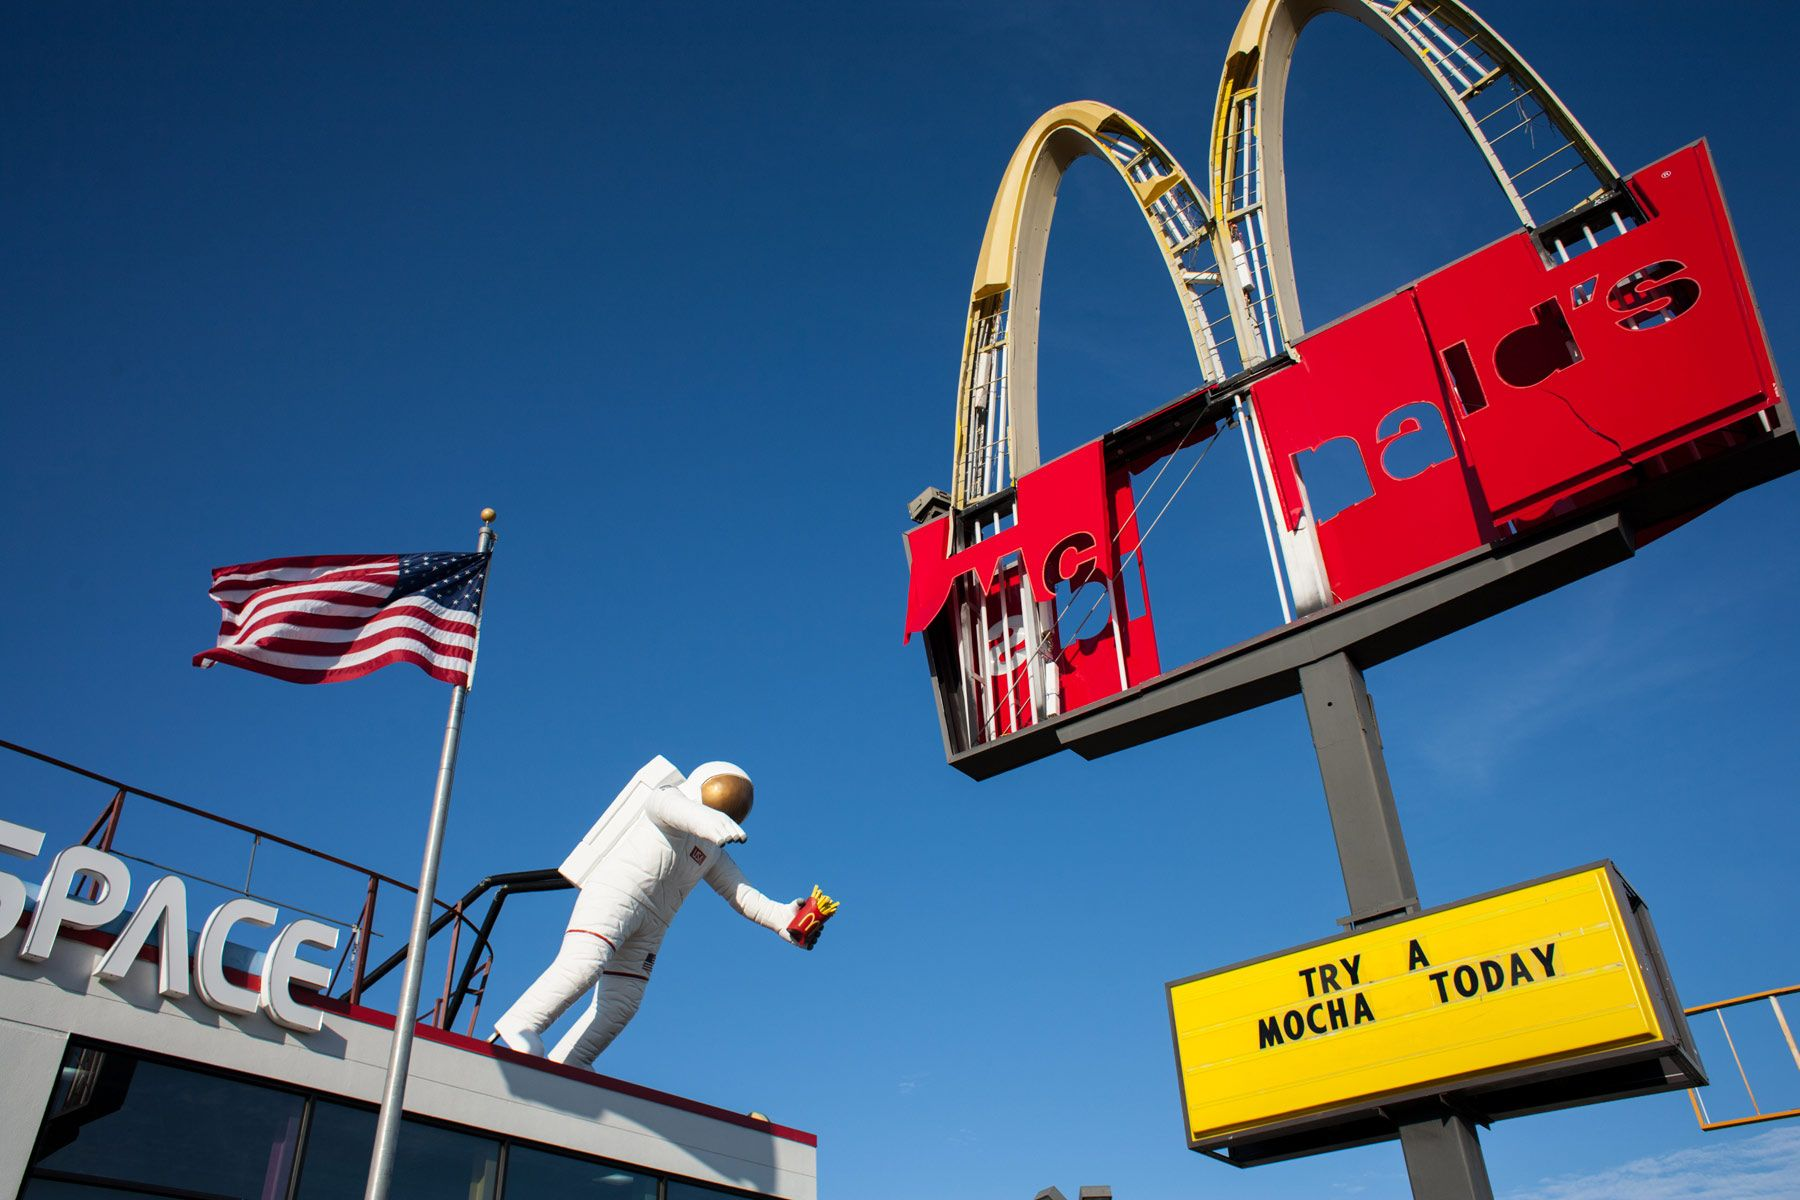 Houston-McDonalds-space-center.jpg